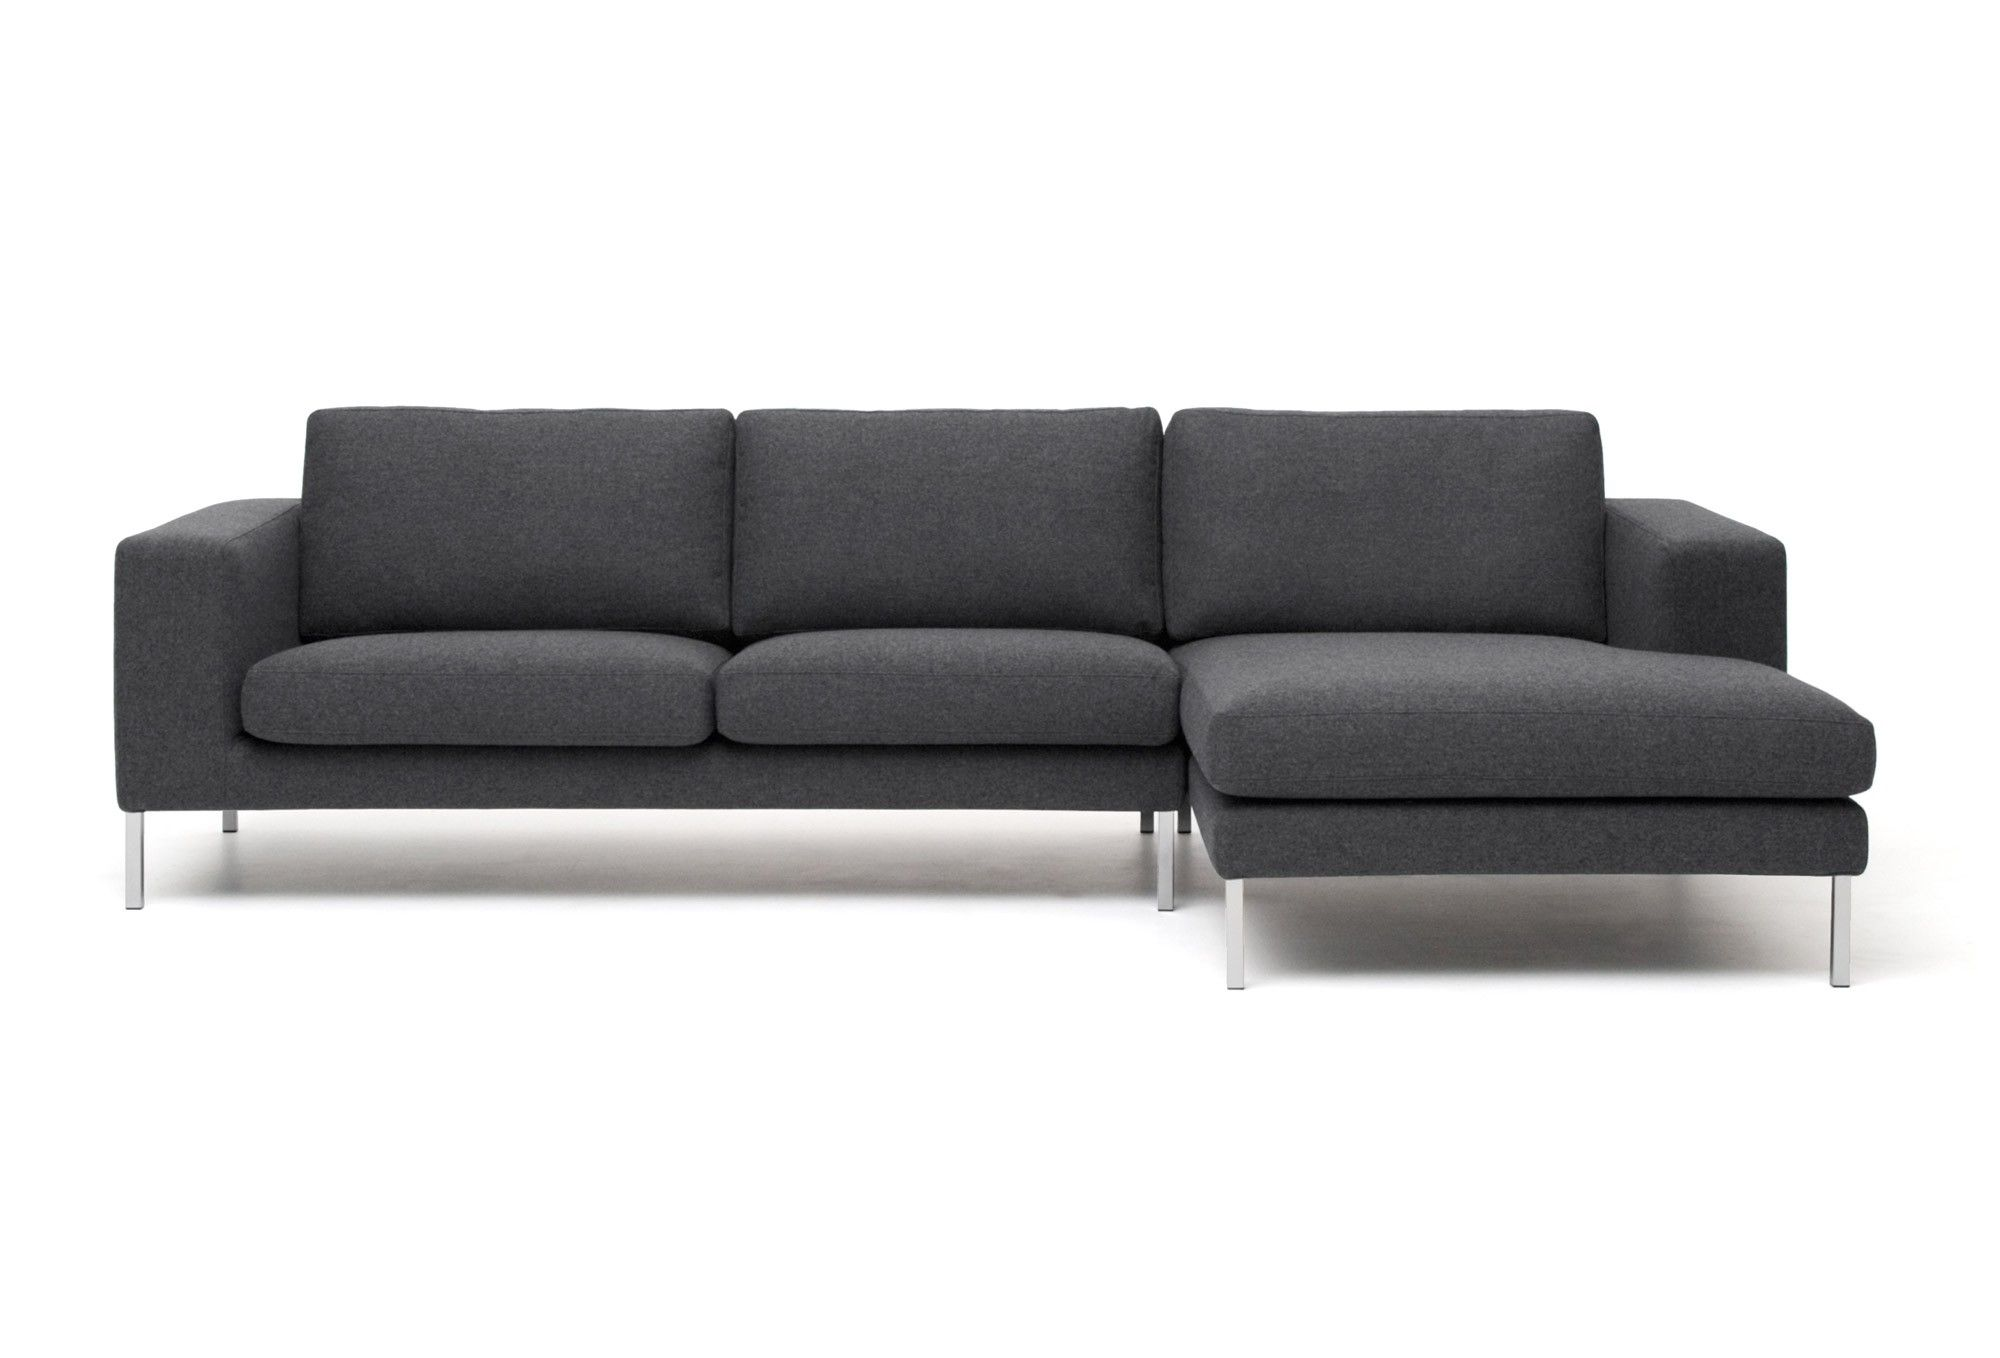 Discover Dark Grey Contemporary Corner Sofa From Biki Range With